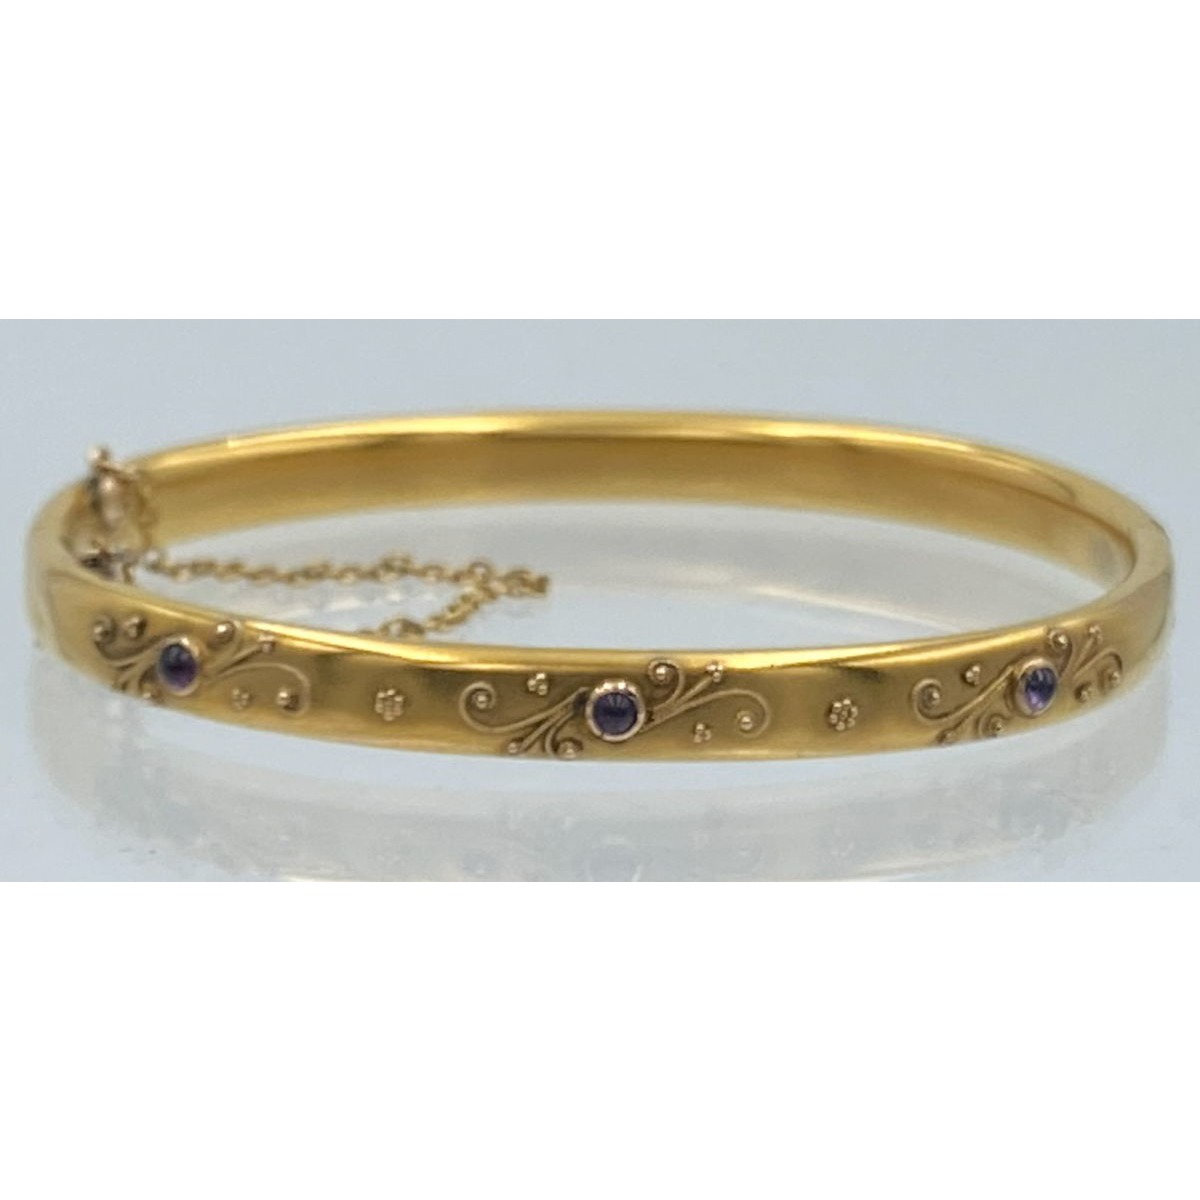 Exceptional Antique Gold Bangle with Amethysts and Applied Gold Wire Decoration